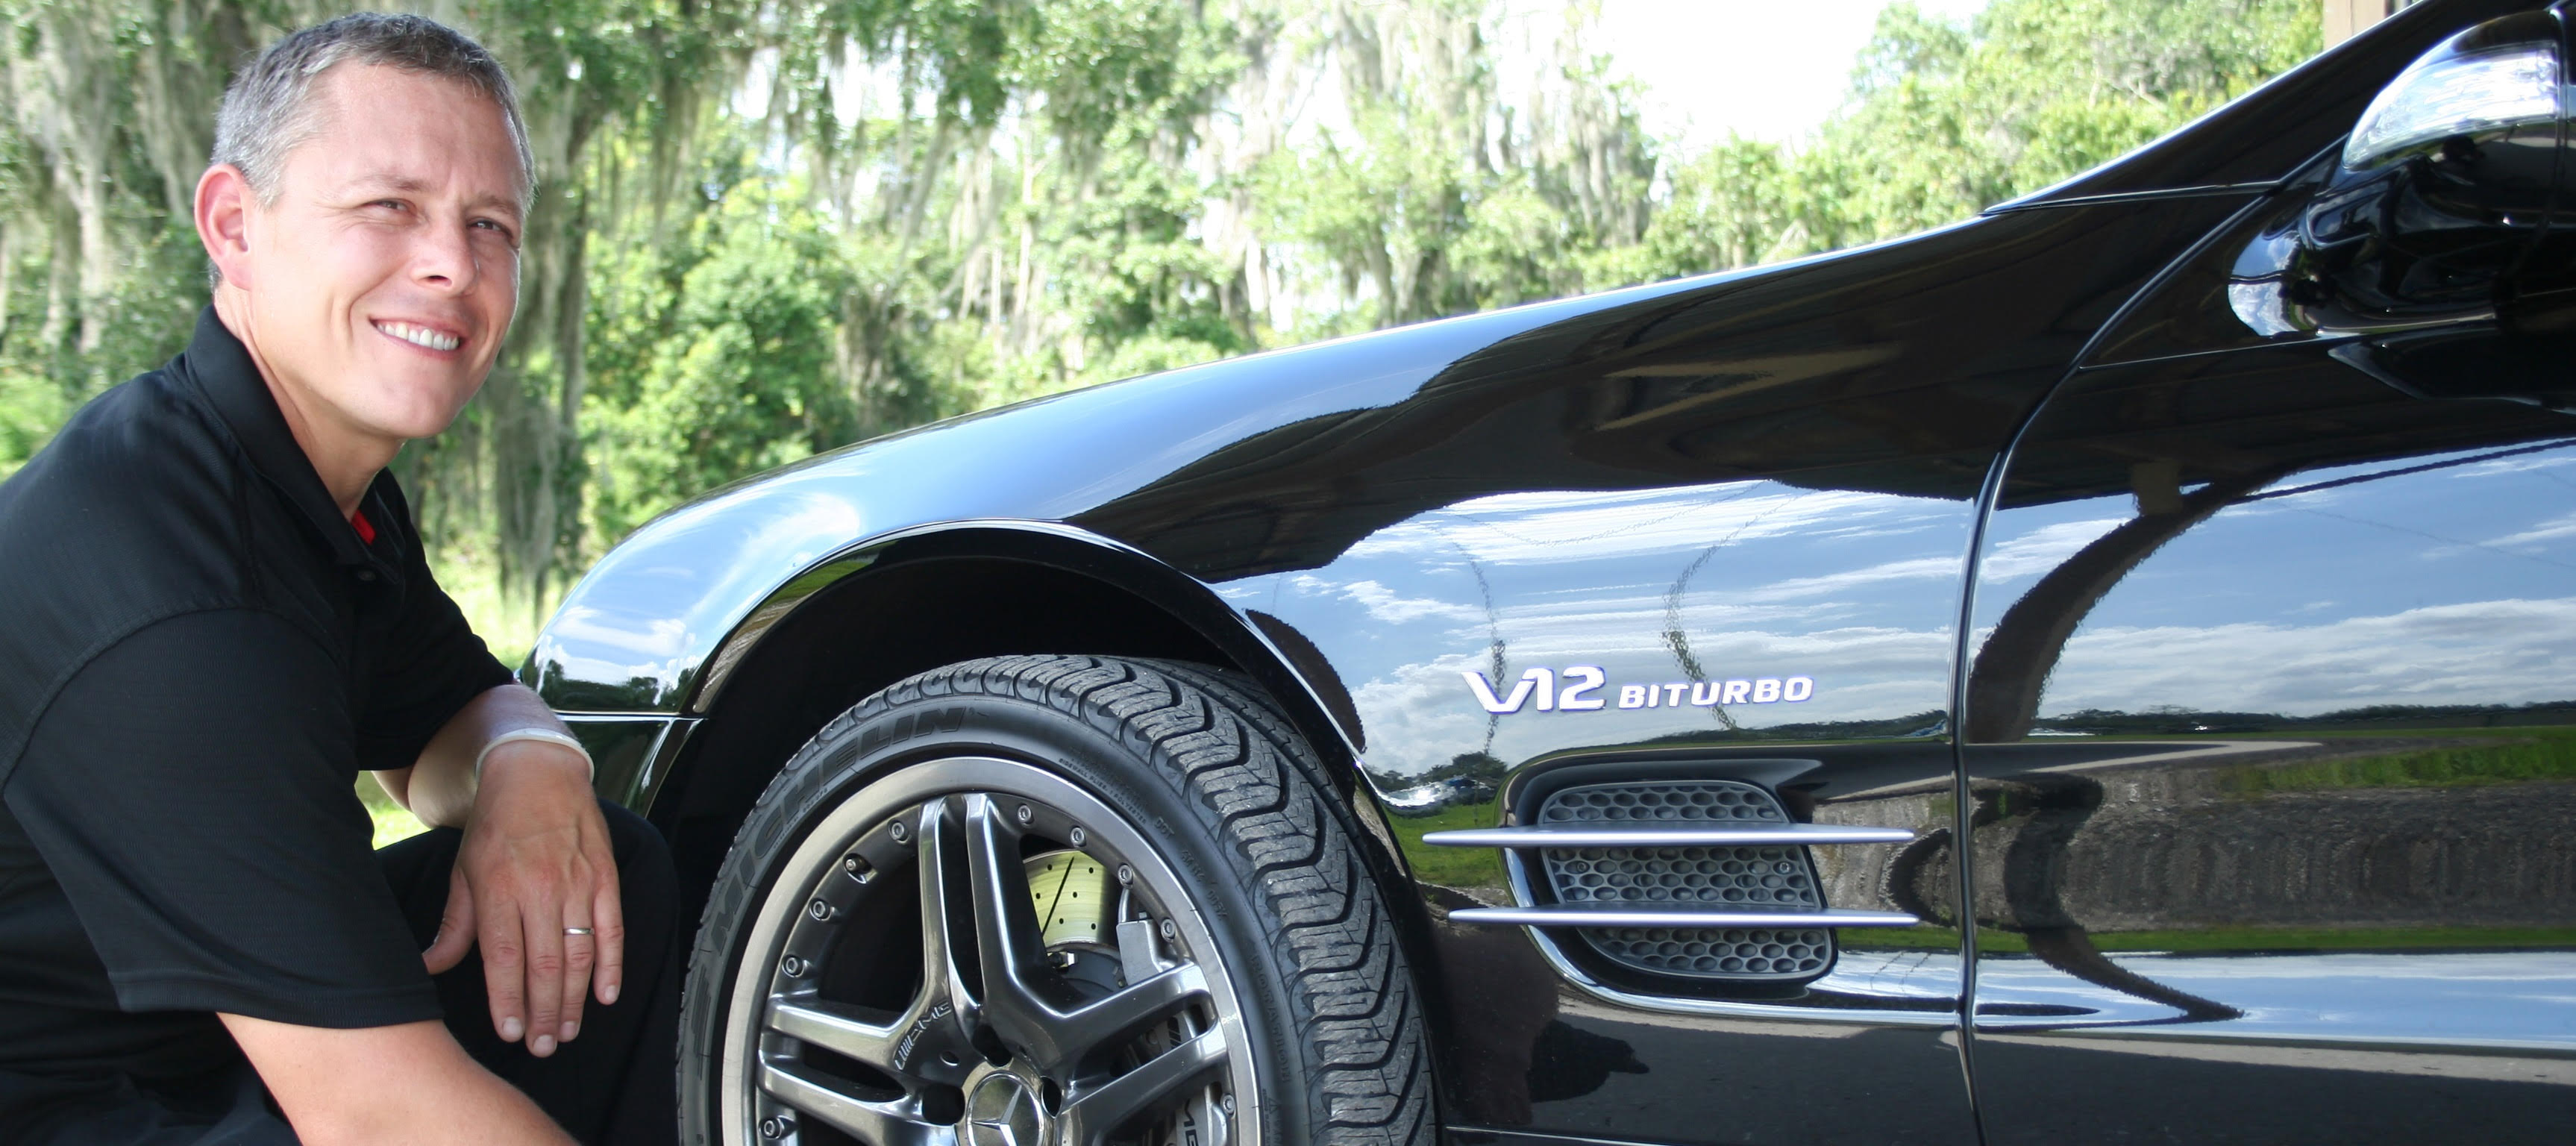 Mercedes Benz Repair By Star Value Automotive In Lakewood